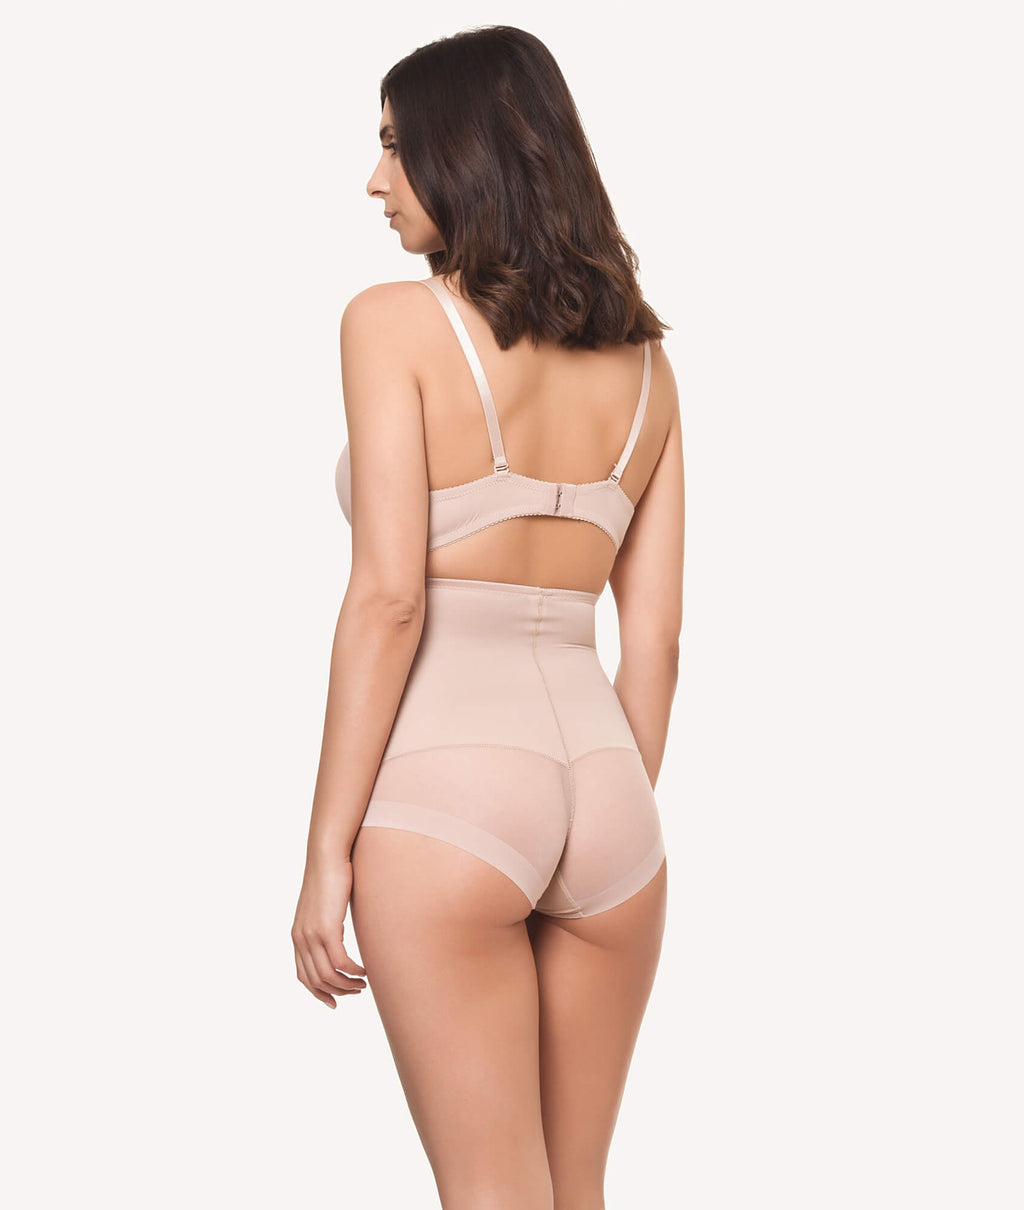 Braga faja reductora invisible beige trasera - CHANNO Woman